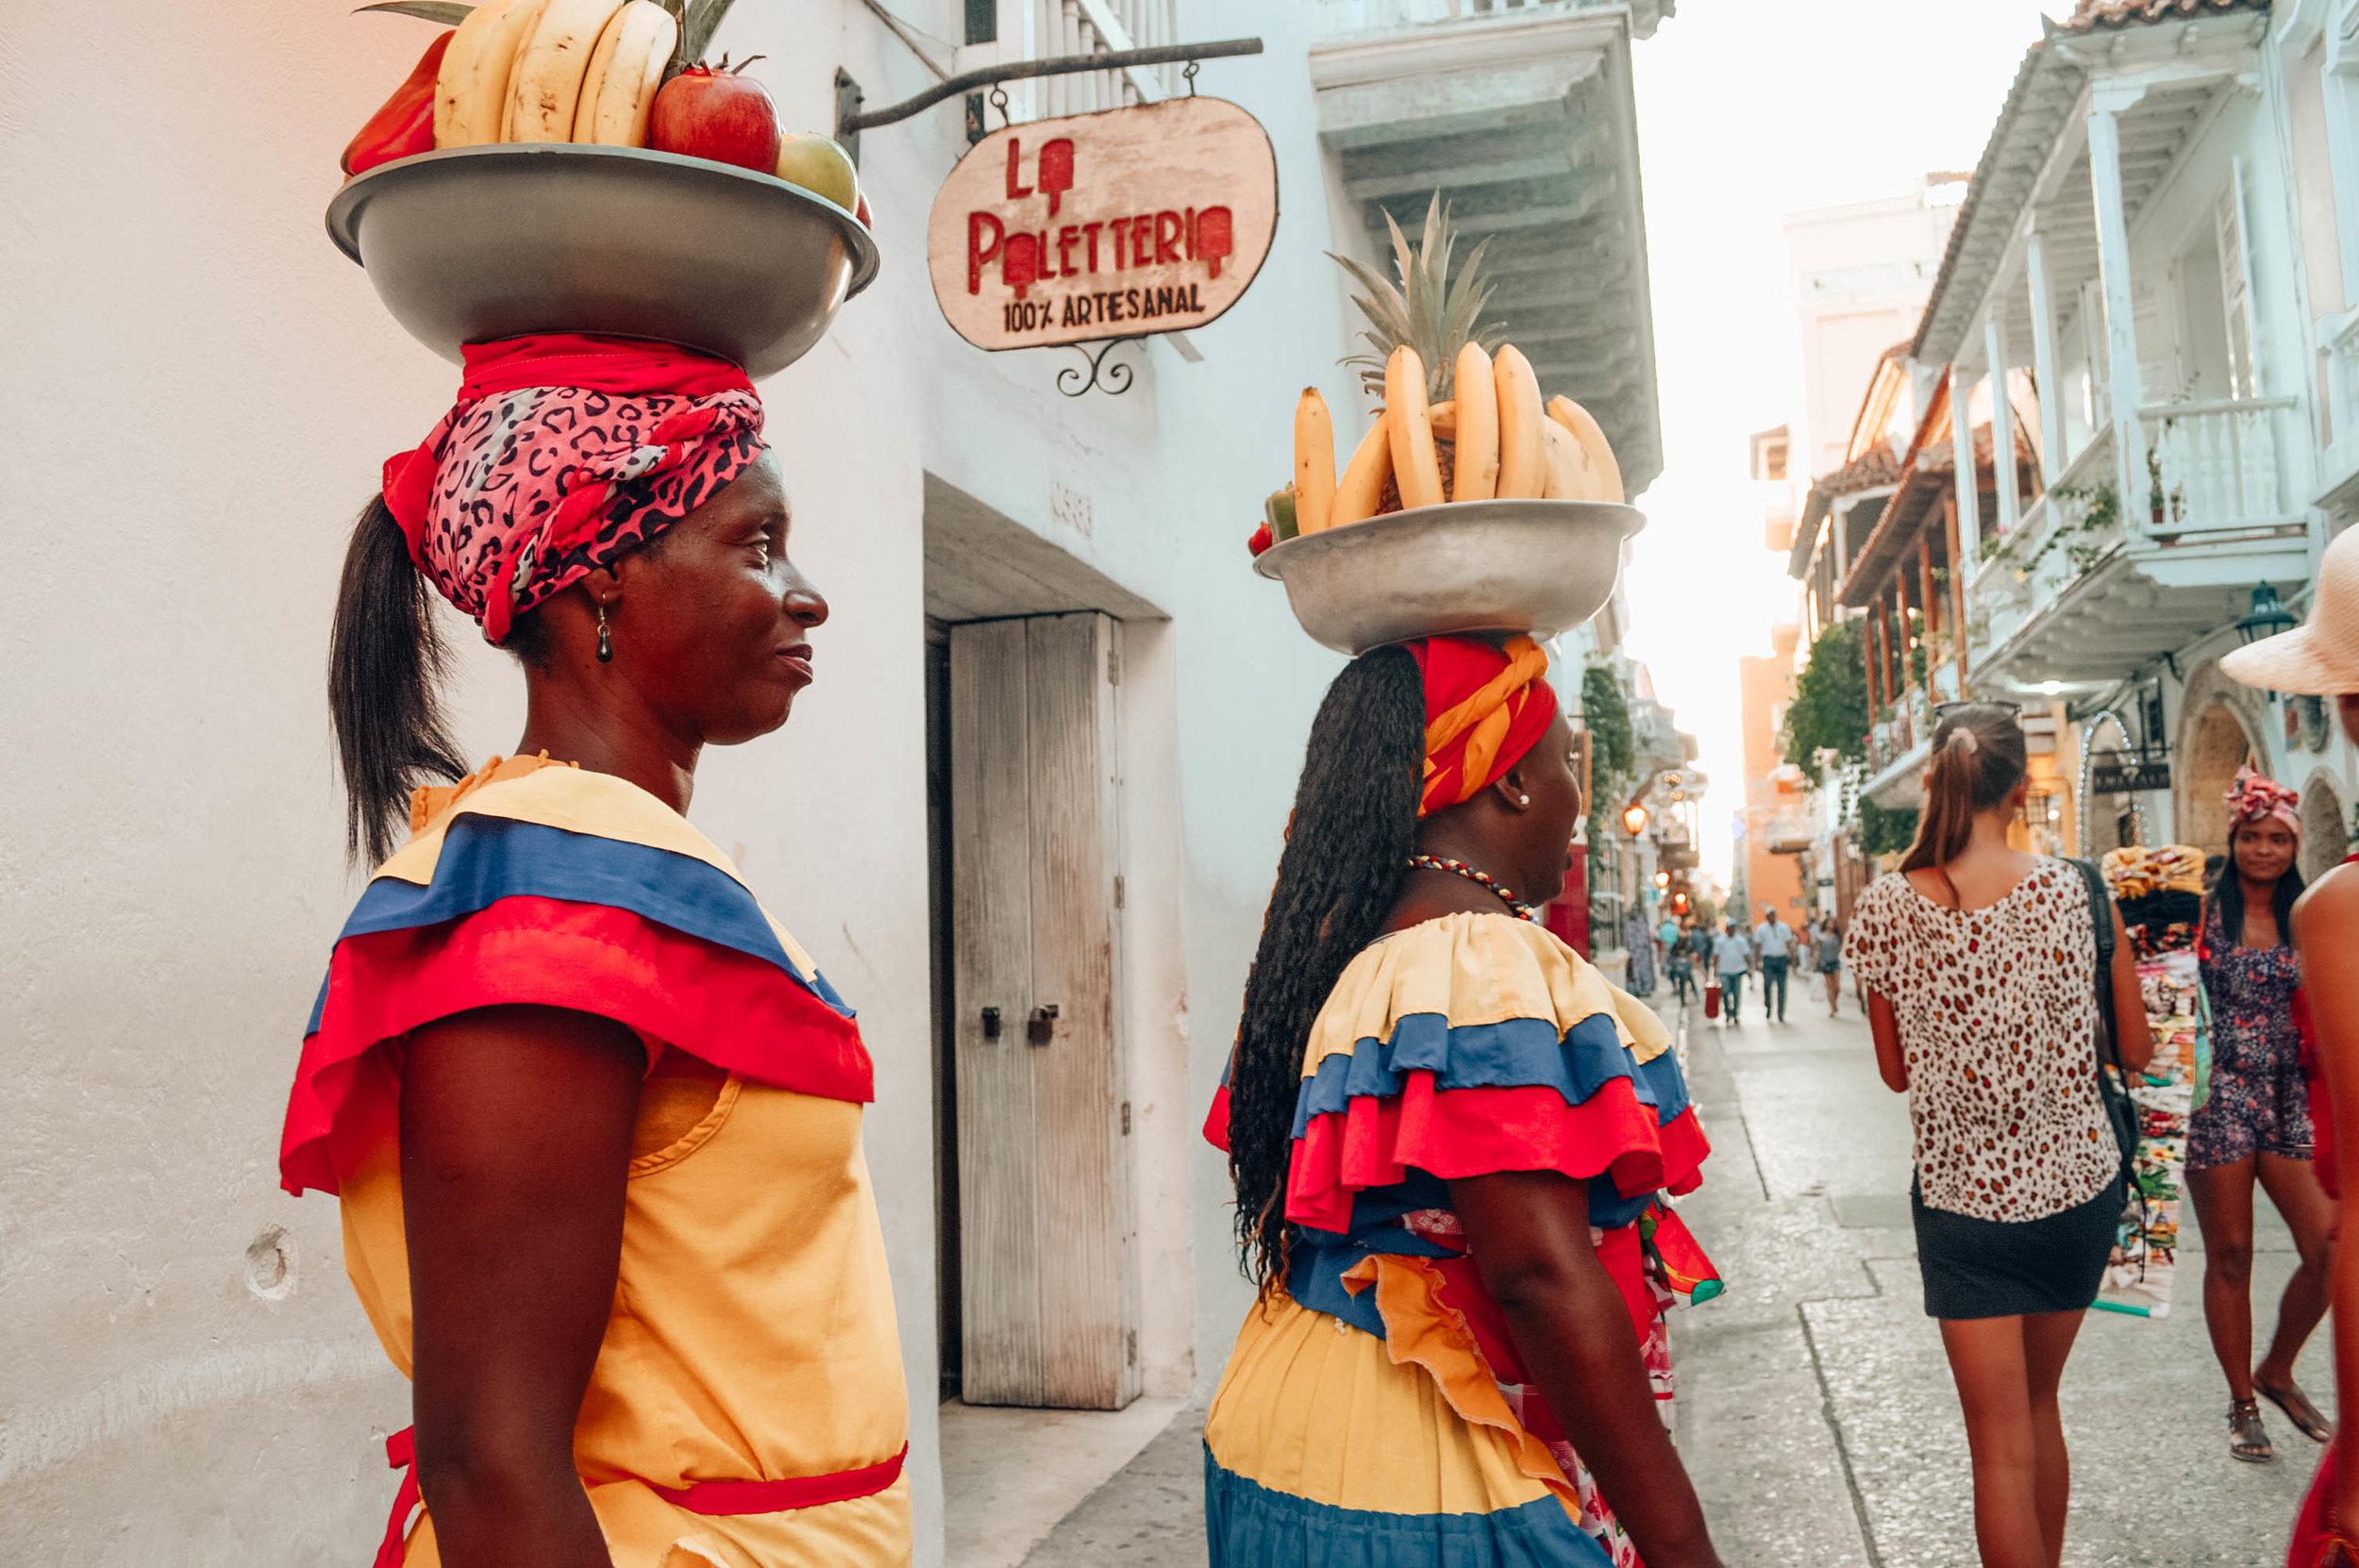 The traditionally dressed ladies with the fruit (you can pay them a tip to take a photo with them, which I did, haha) are walking around Cartagena